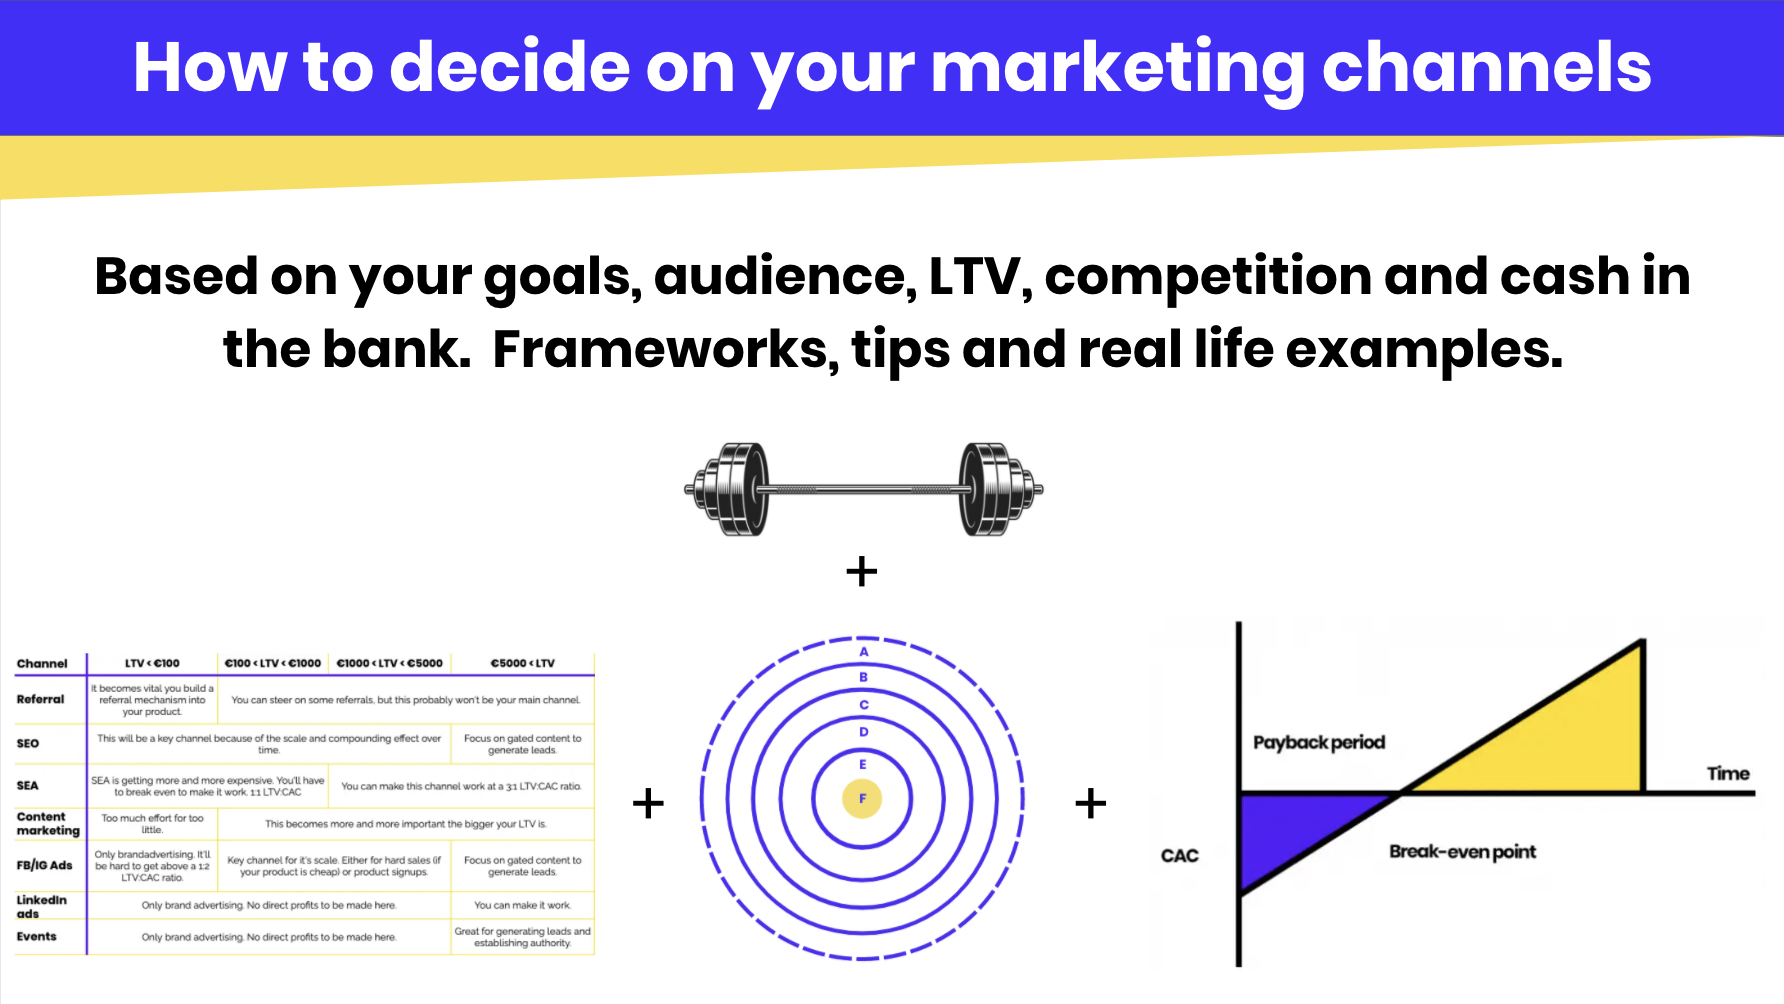 How to decide on your marketing channels